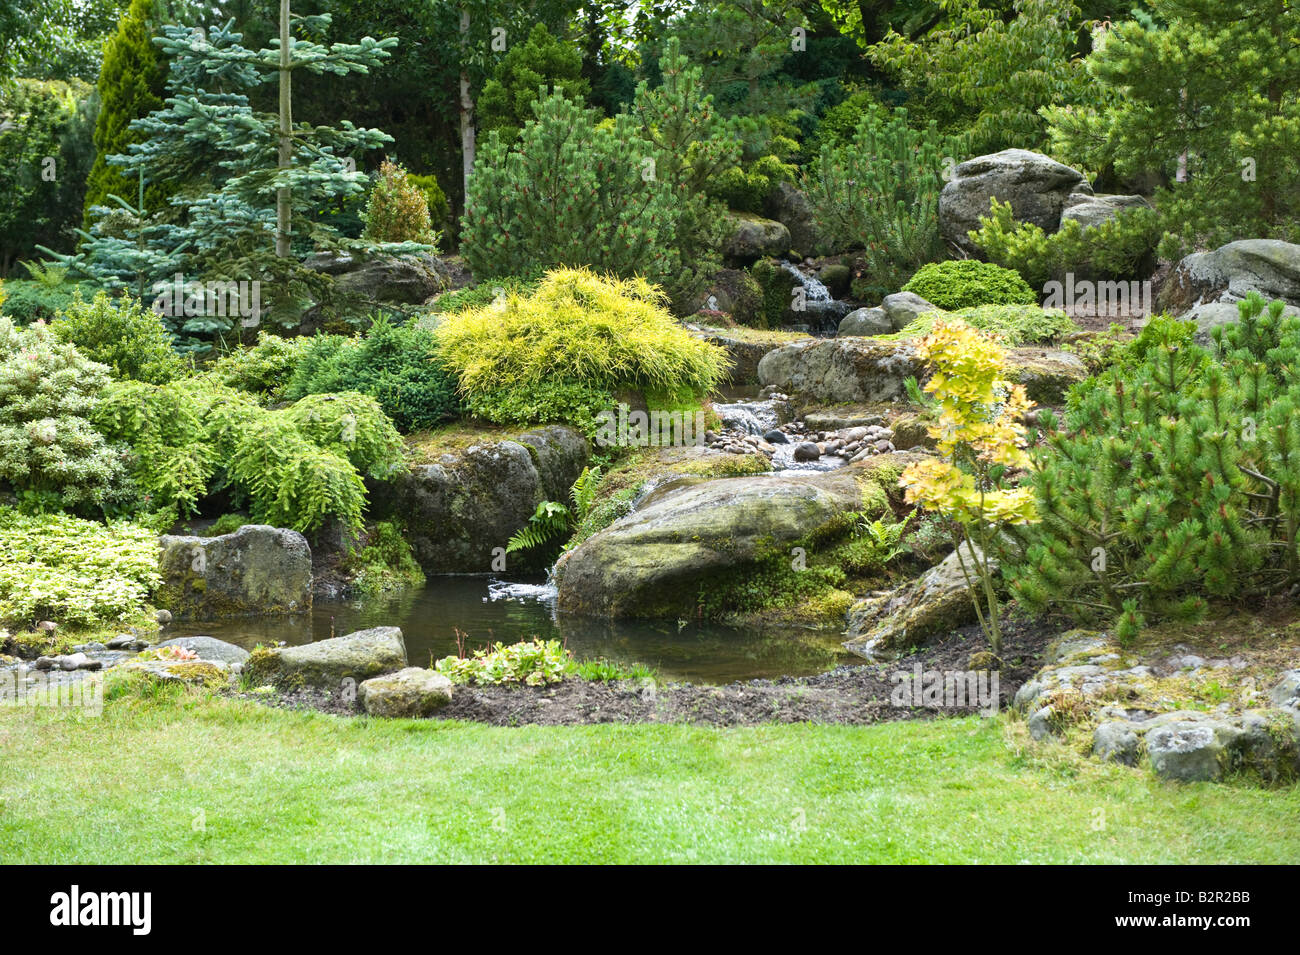 Pond in a rock garden design by Bahaa Seedhom North Yorkshire